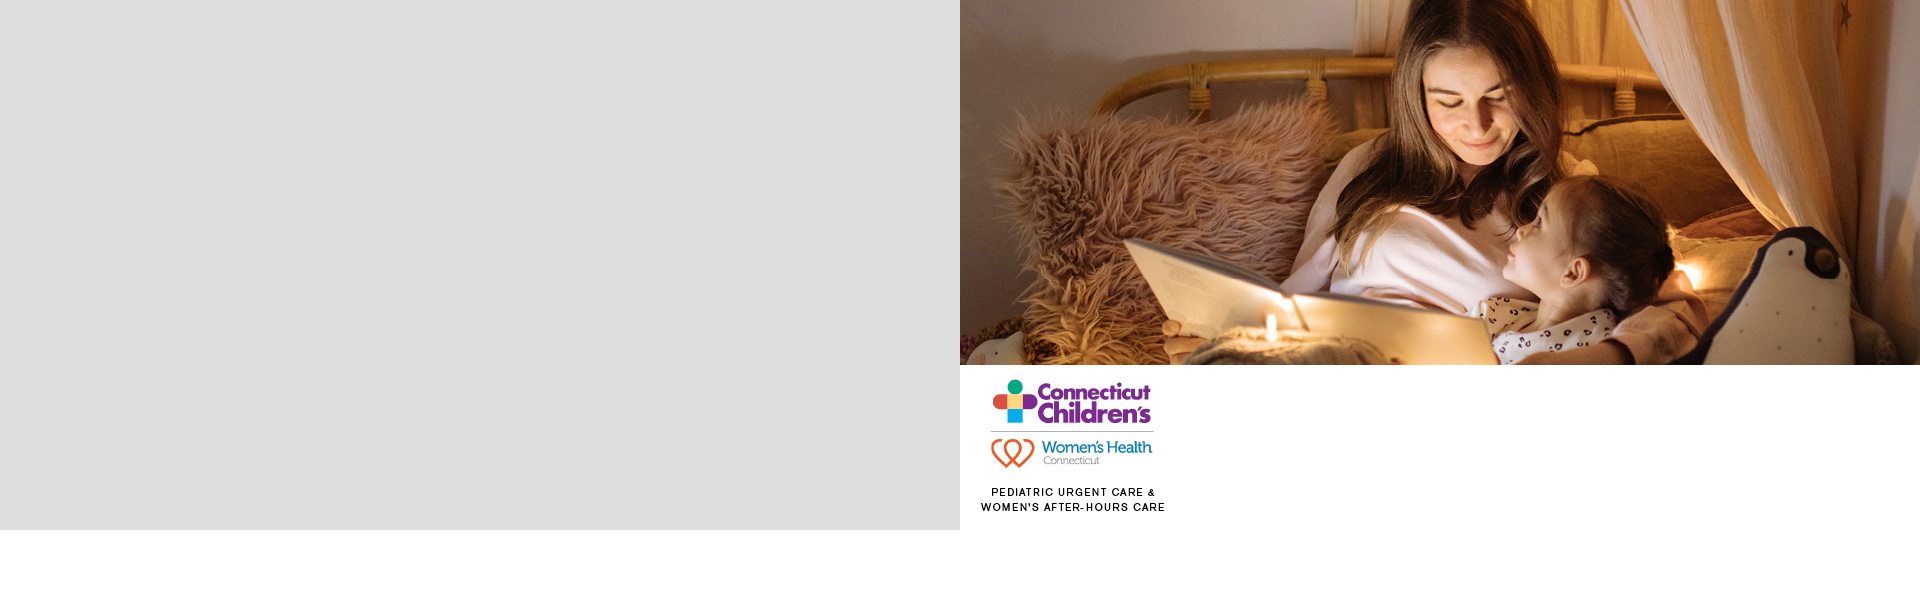 Mother and child reading book in bed with logo for pediatric urgent care and women's health after-hours